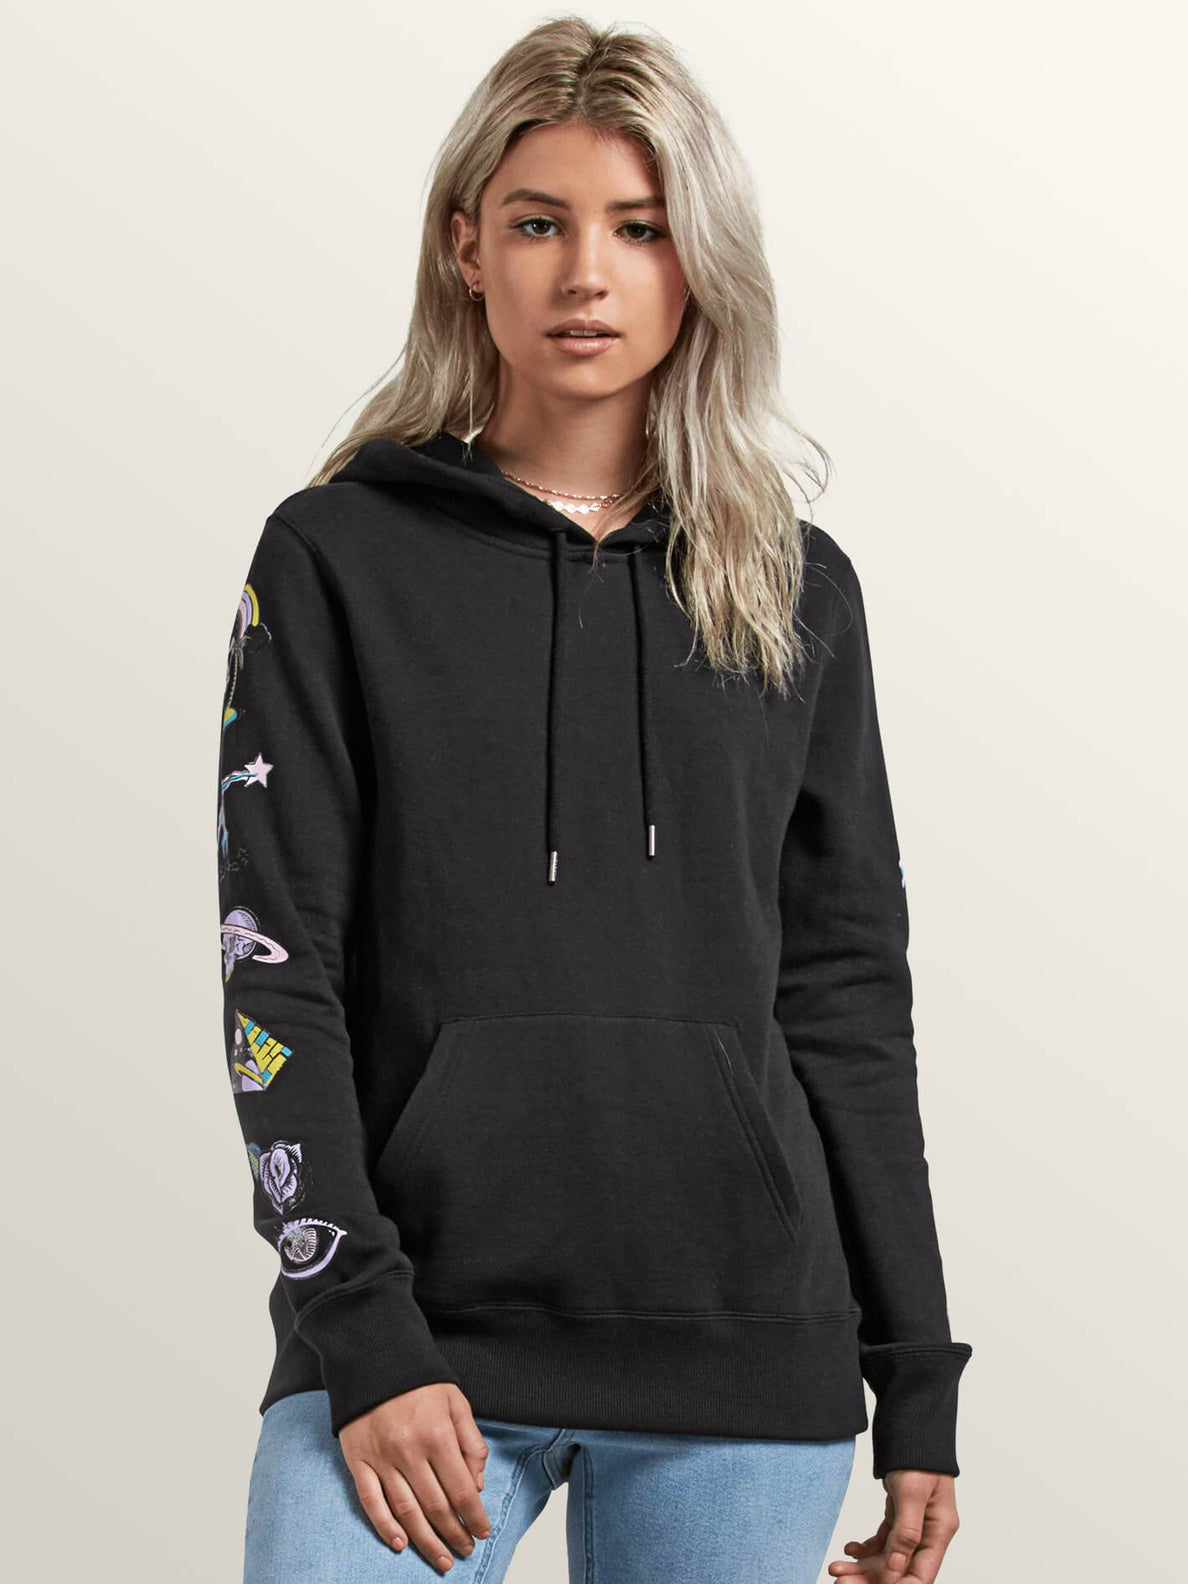 Vol Stone Hoodie Sweater - Black